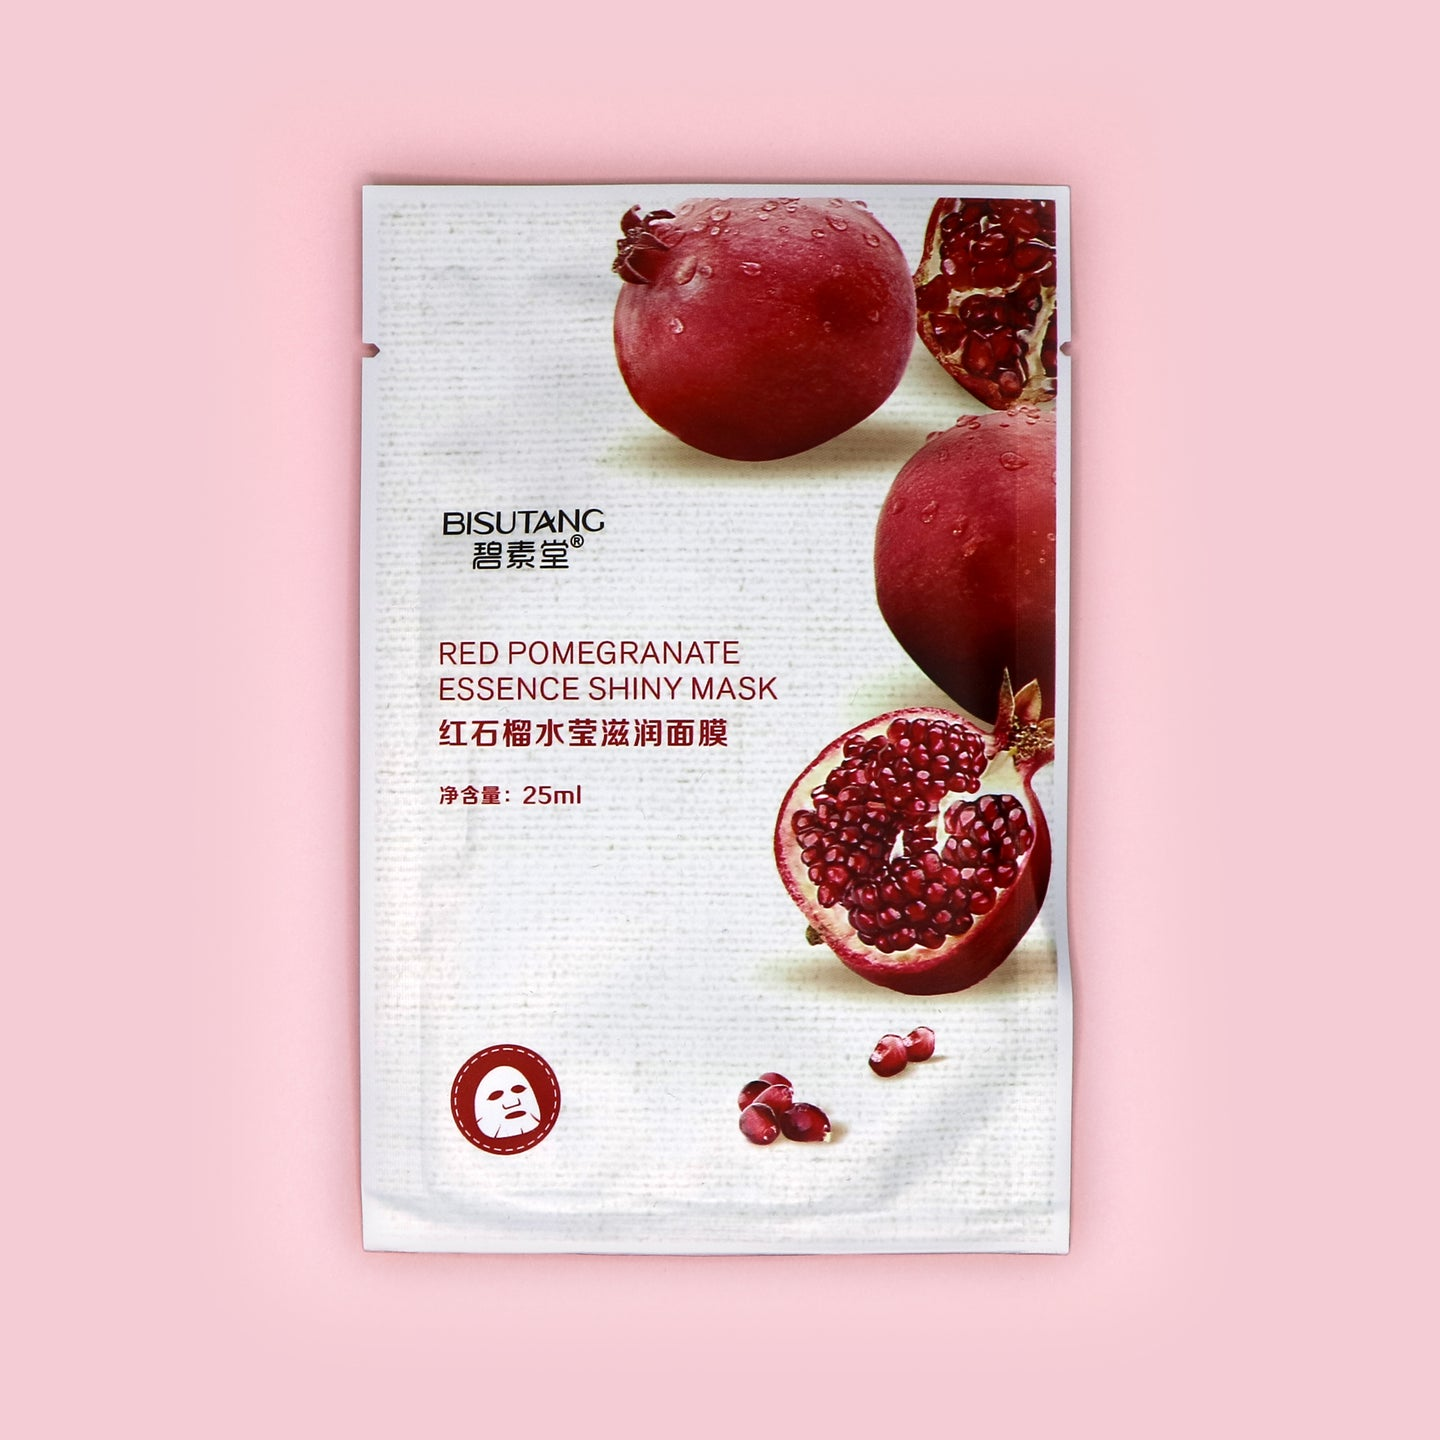 BISUTANG RED POMEGRANATE ESSENCE SHINY MASK